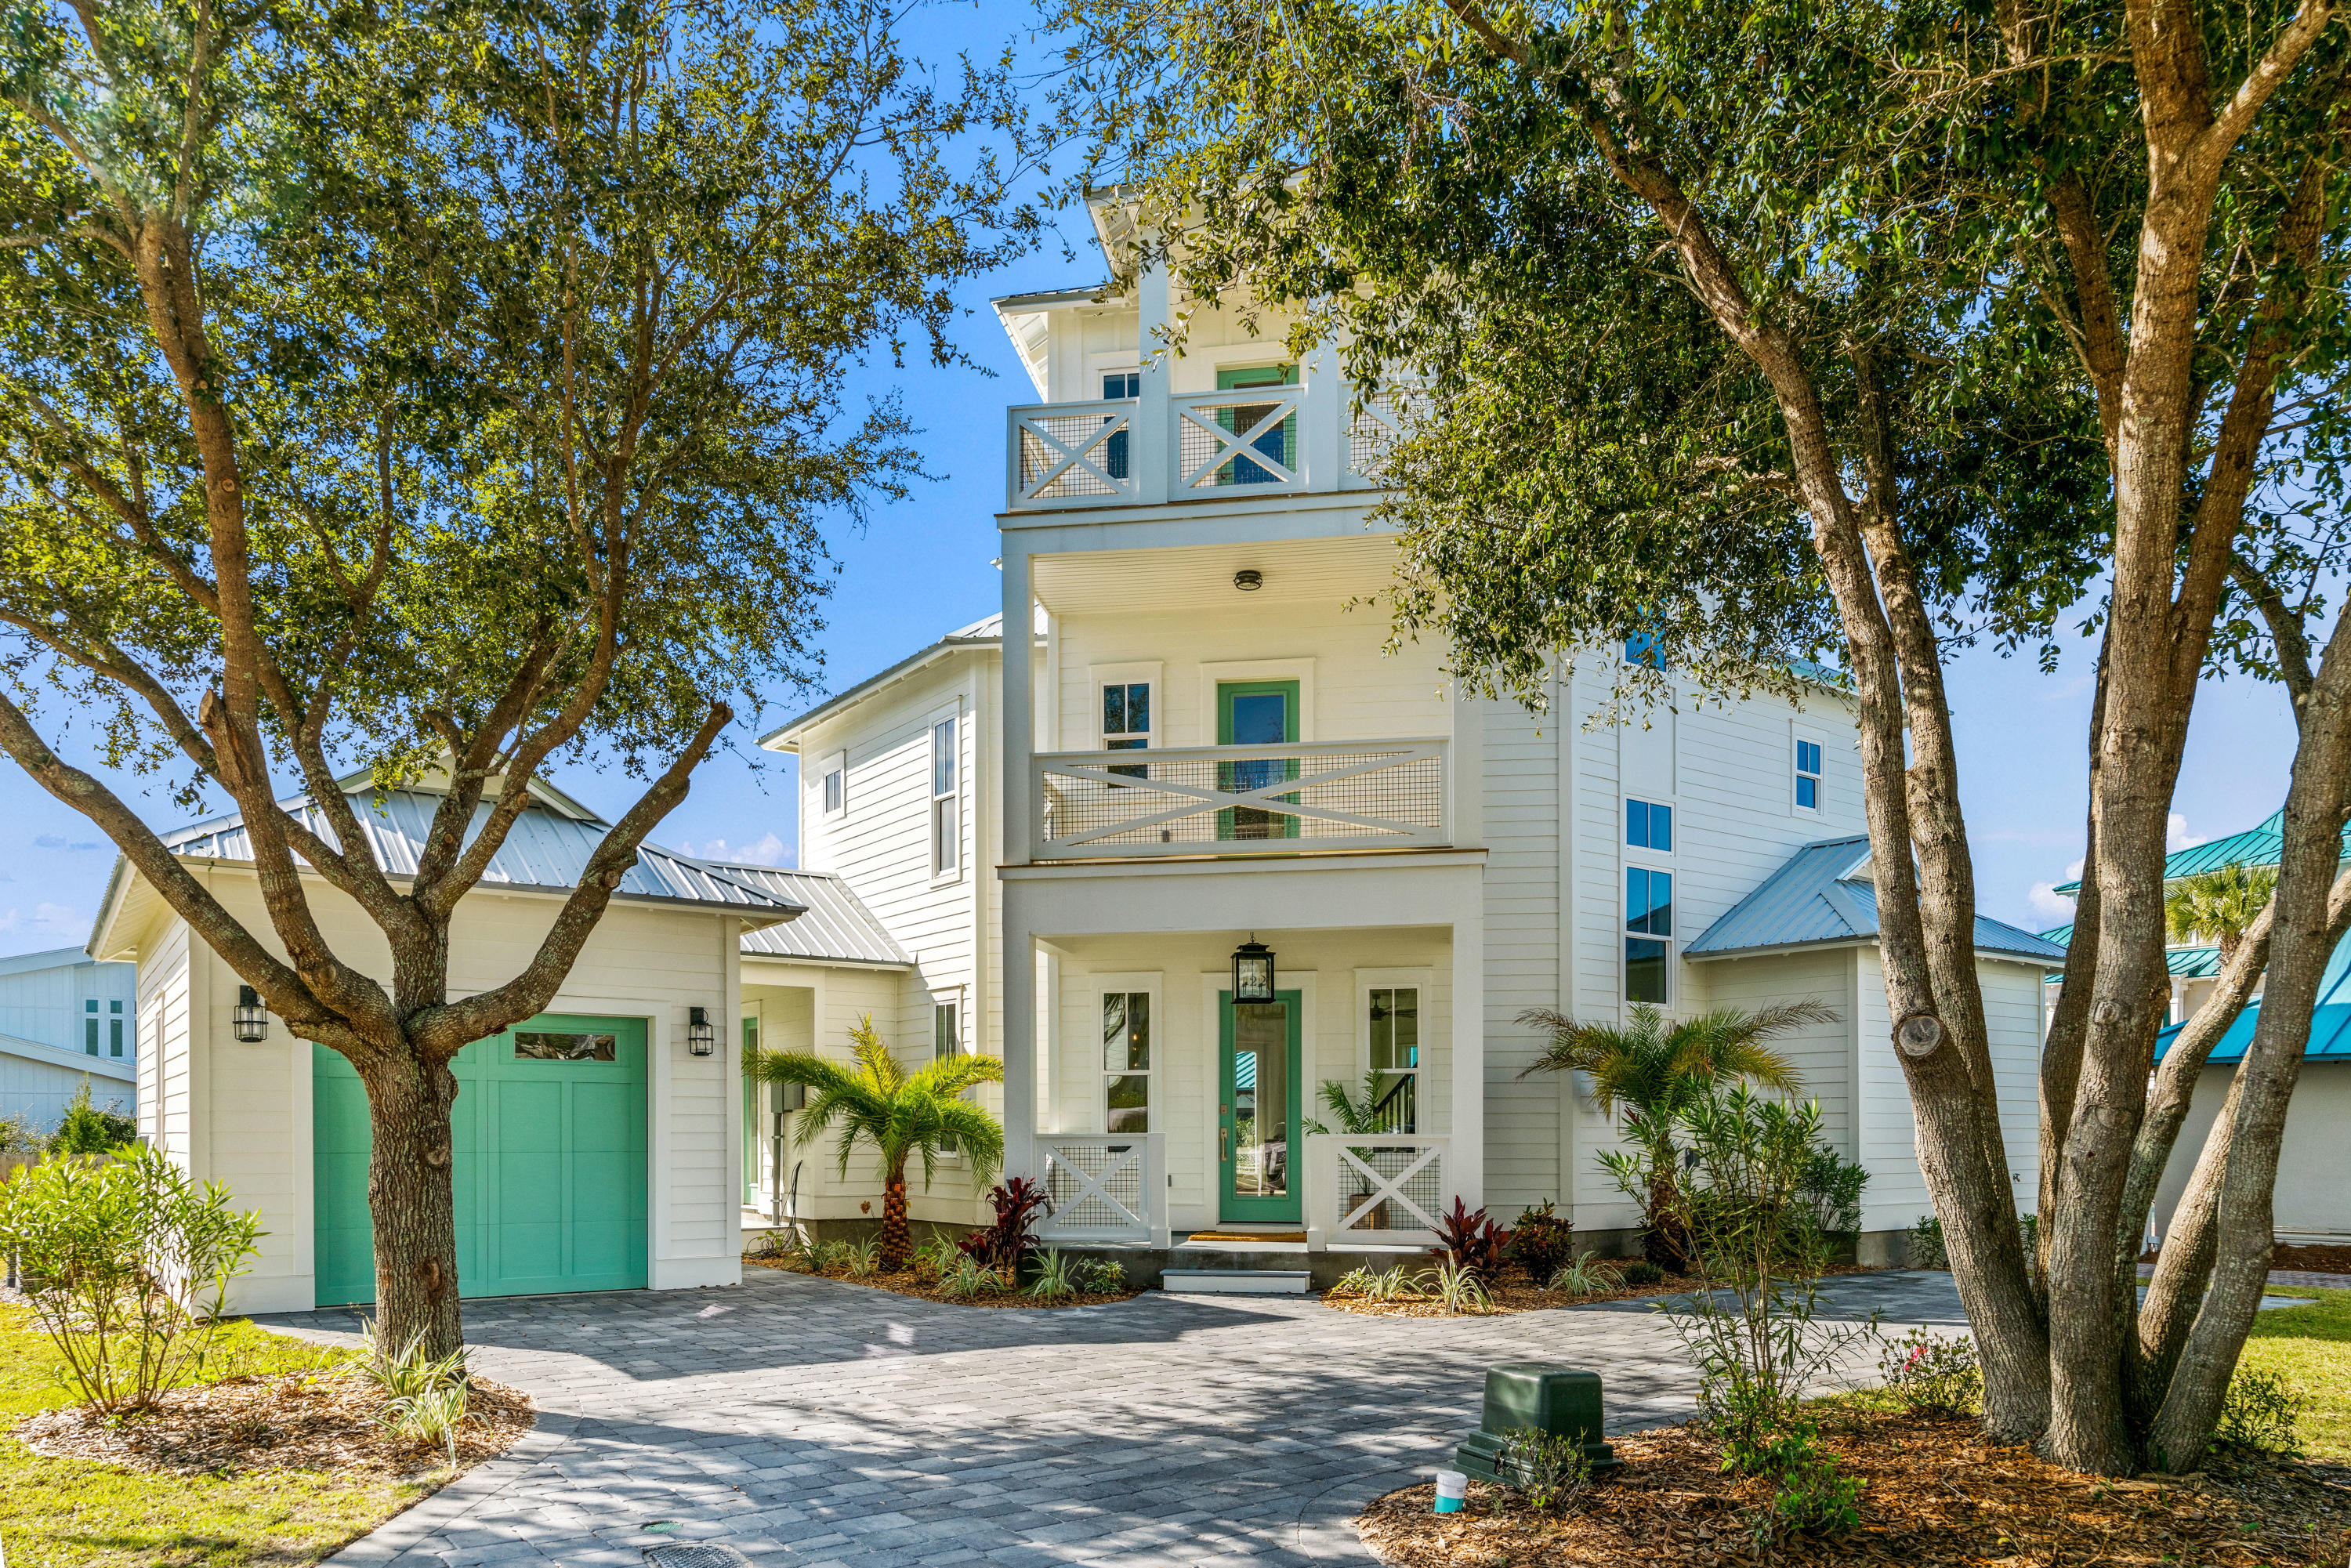 A 5 Bedroom 4 Bedroom Village At Blue Mountain Beach Home